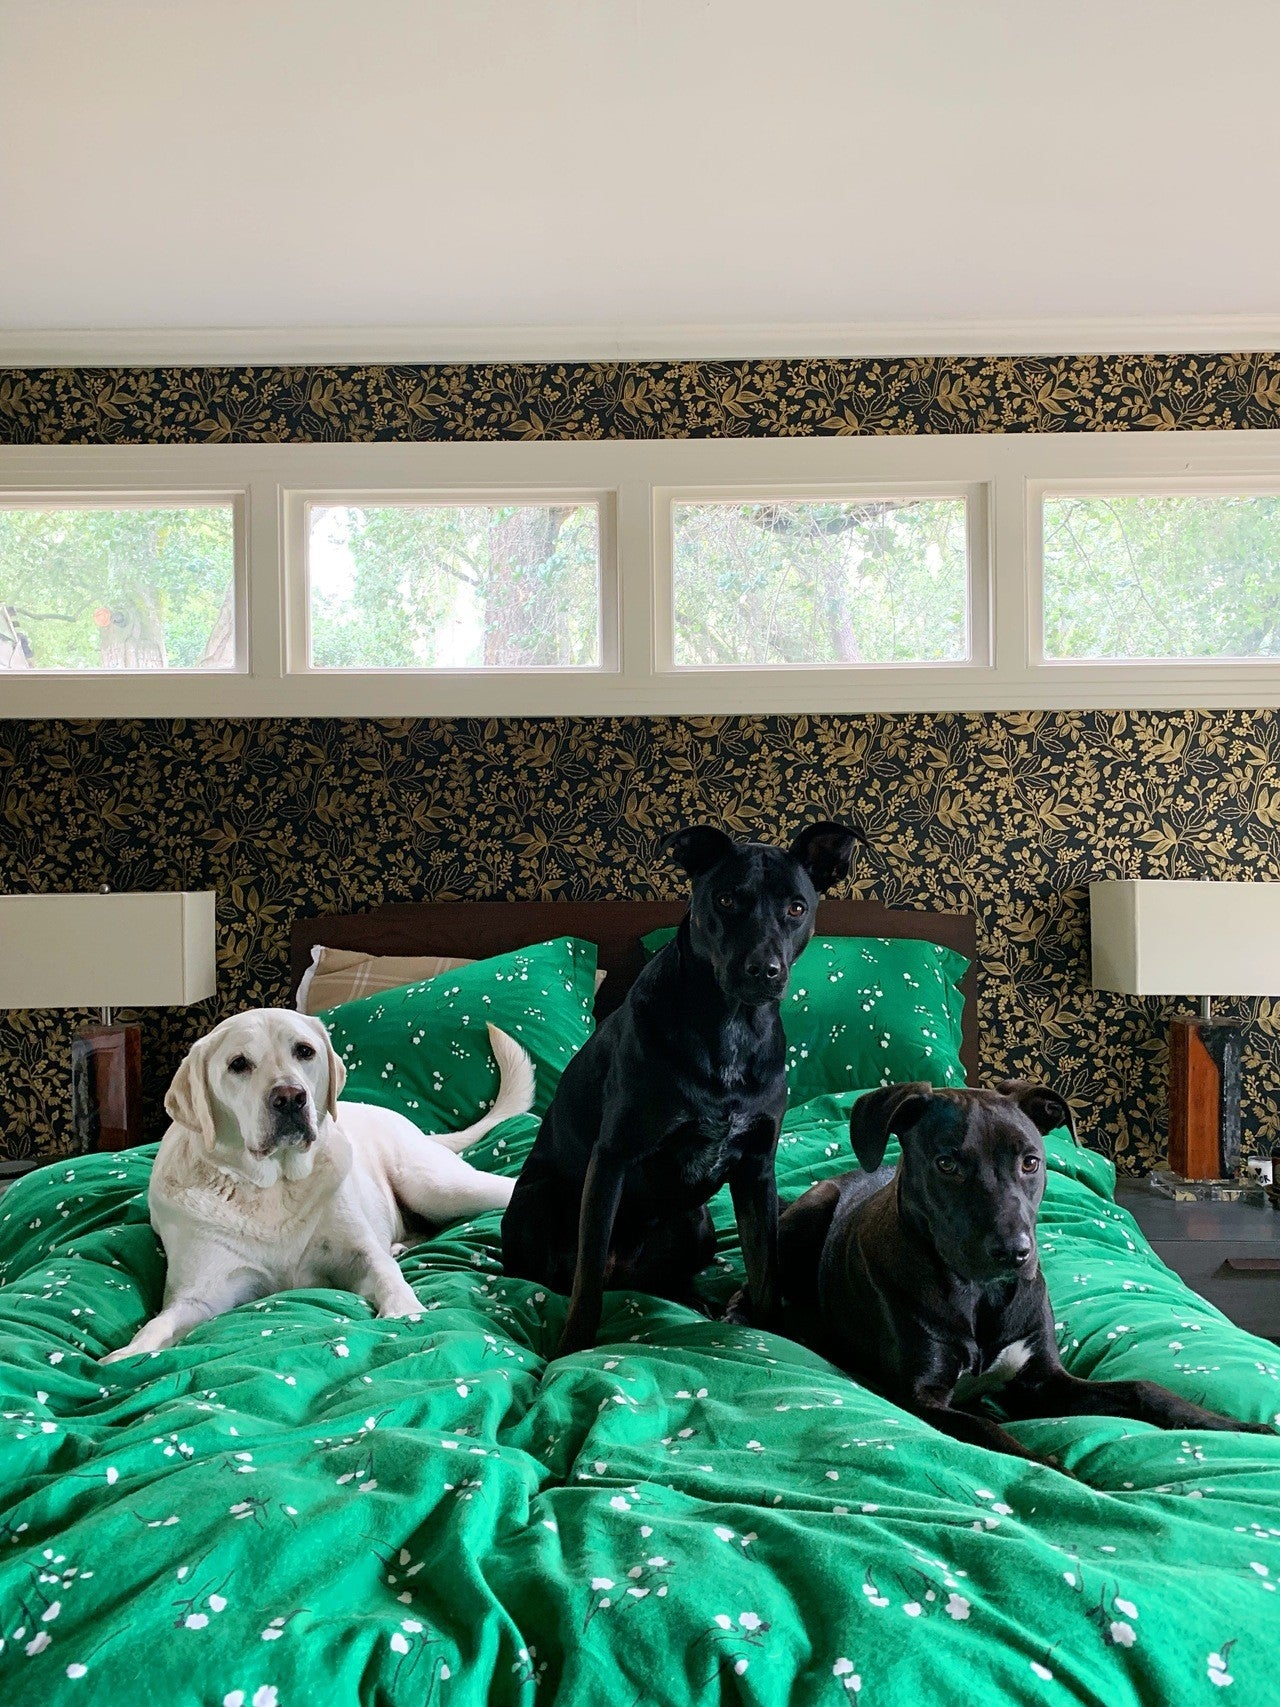 Take Your Dog to Work Day | Wildflower Emerald bedding | Charlotte Janvier | Hygge & West